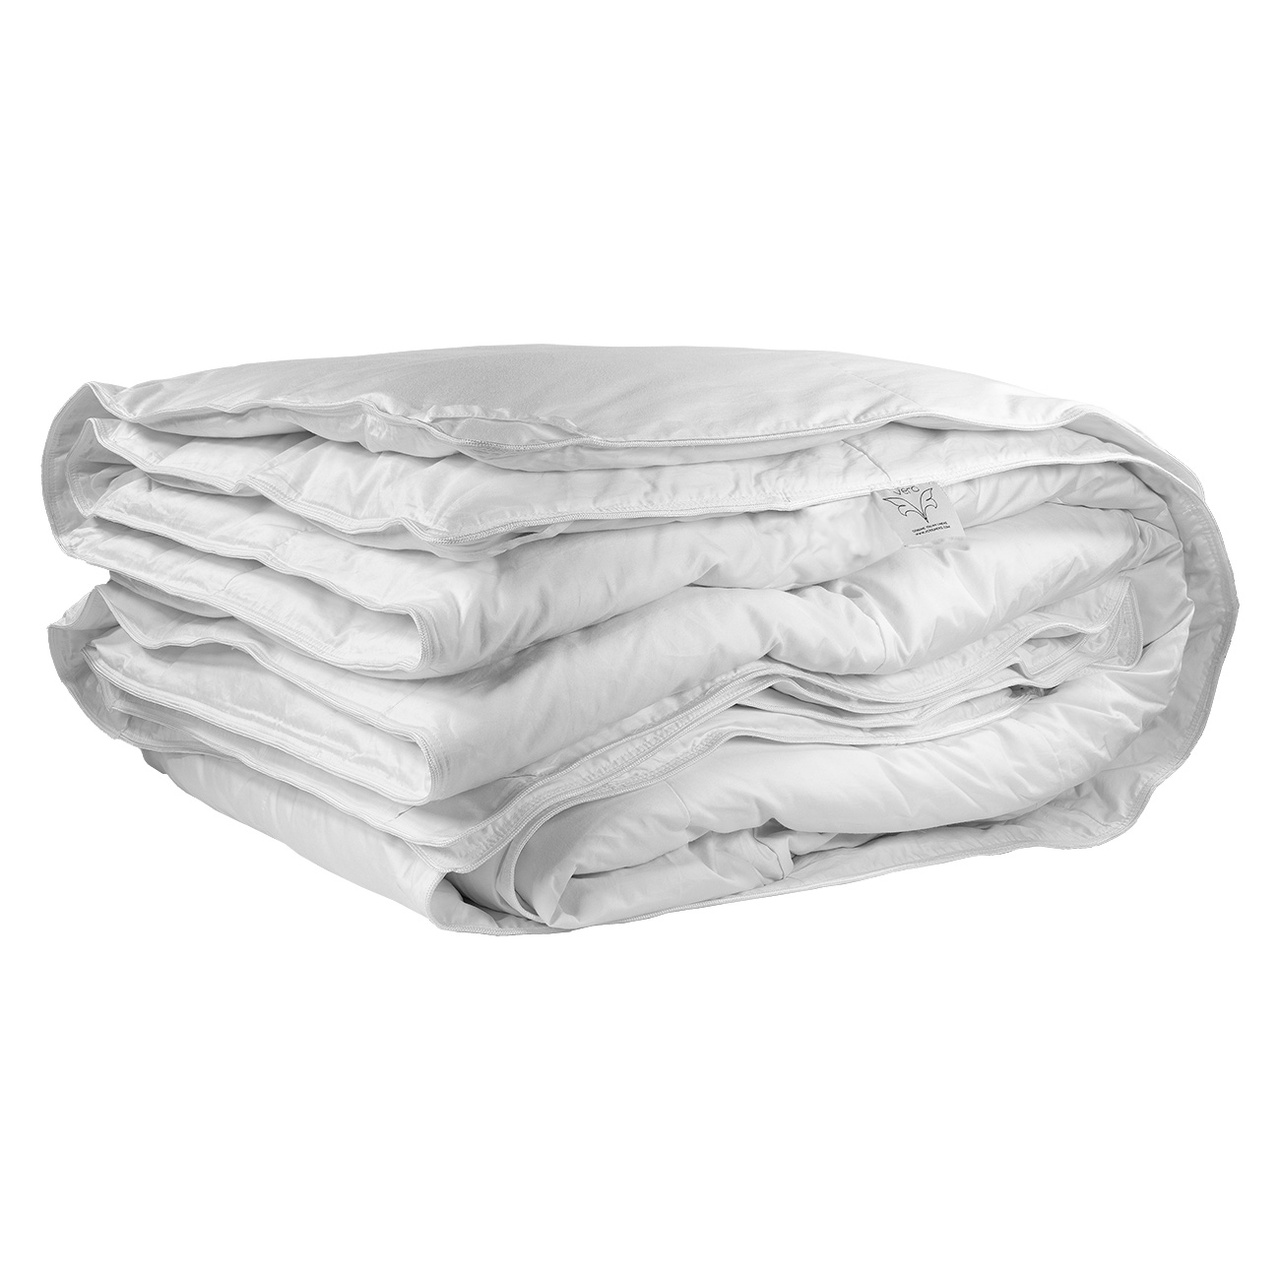 Luxury Baffle Box Down Comforters for Oversized Beds made to fit your Alaskan King, Wyoming King, Texas King, or Vermont King sized bed.